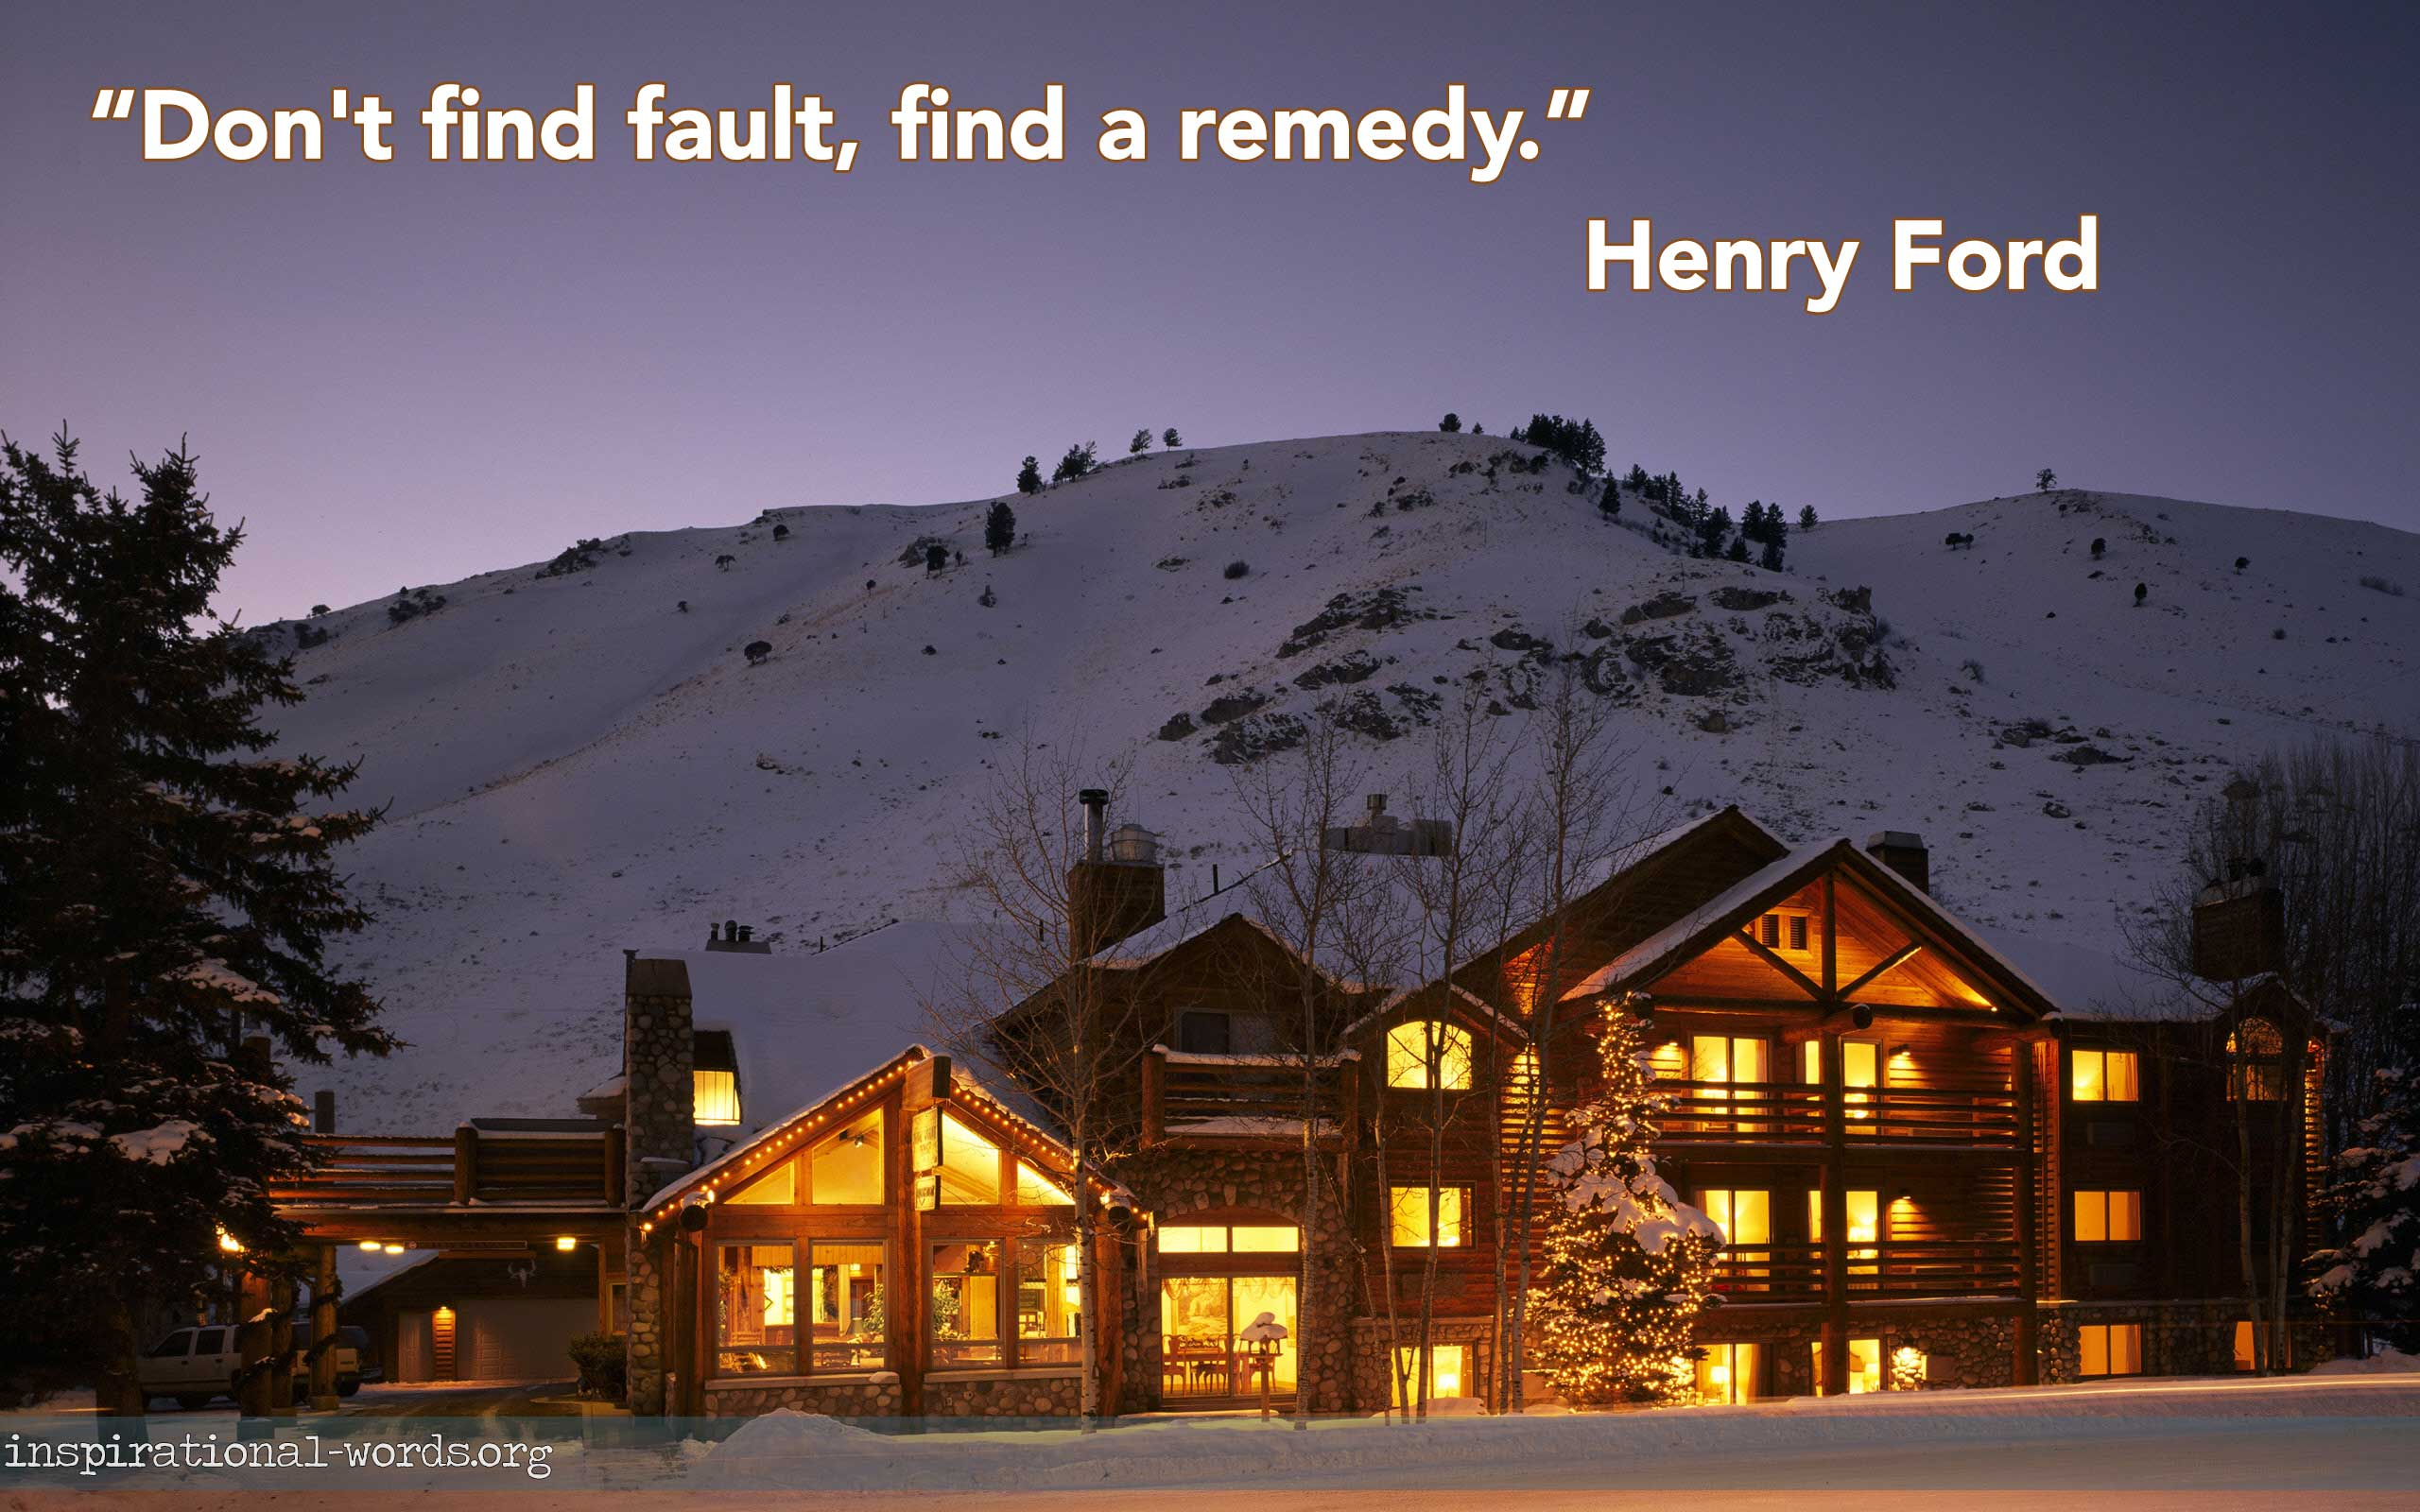 Inspirational Wallpaper Quote: Henry Ford